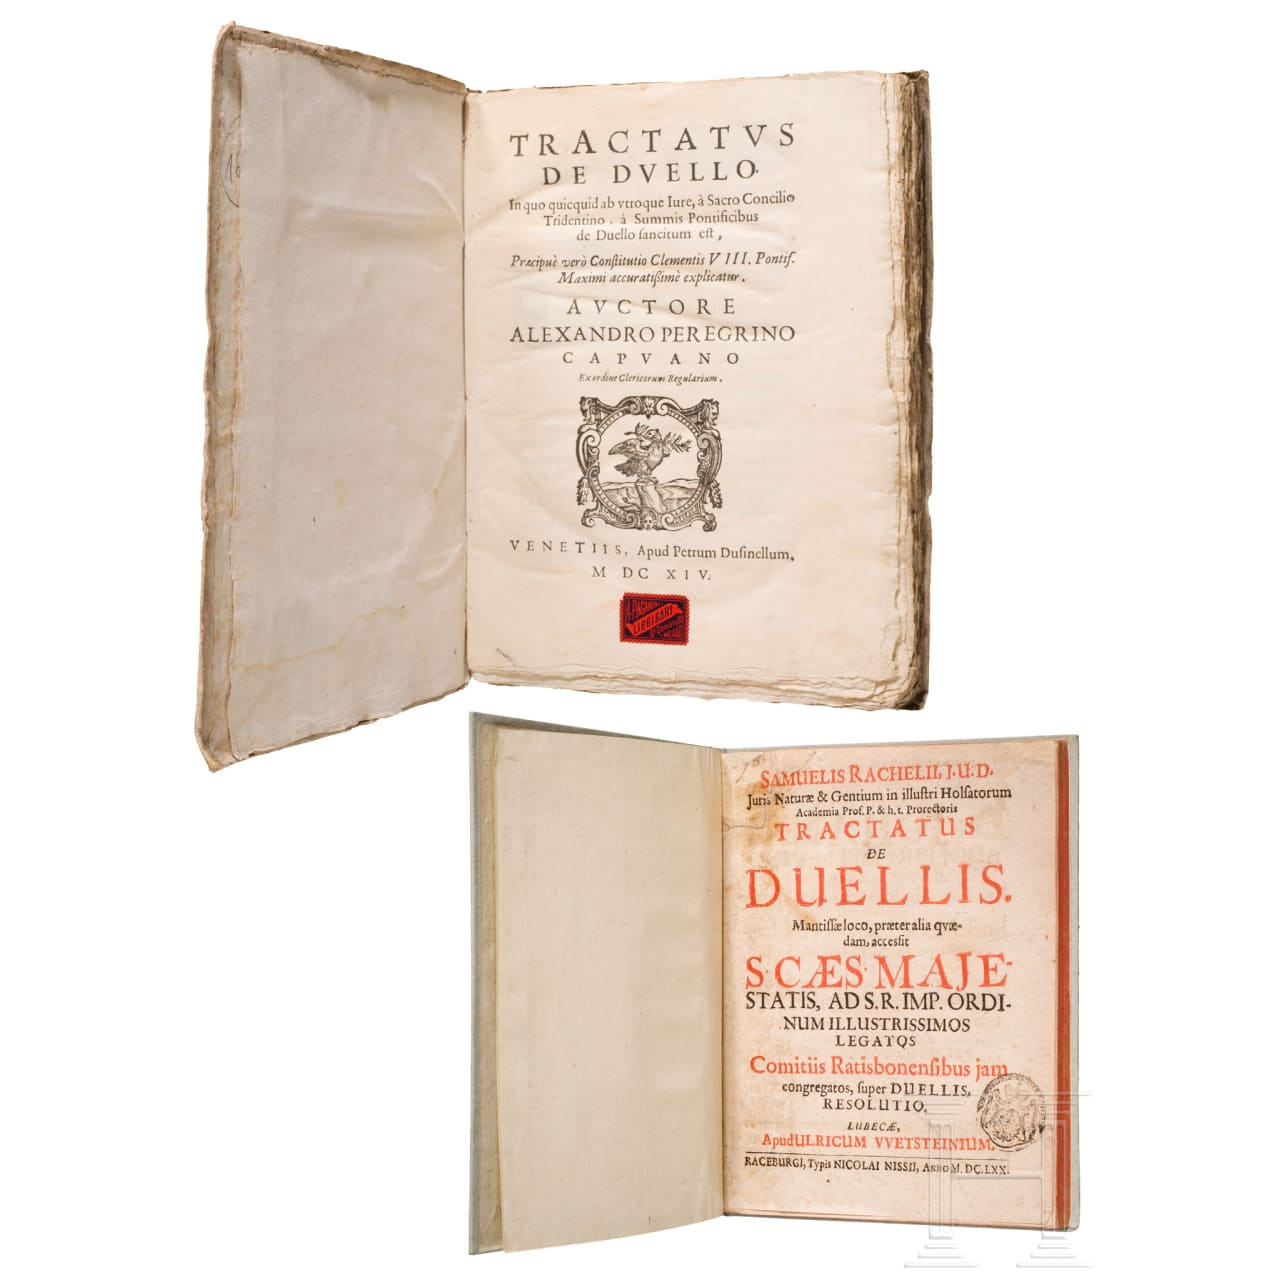 Two treatises on duels, 17th century